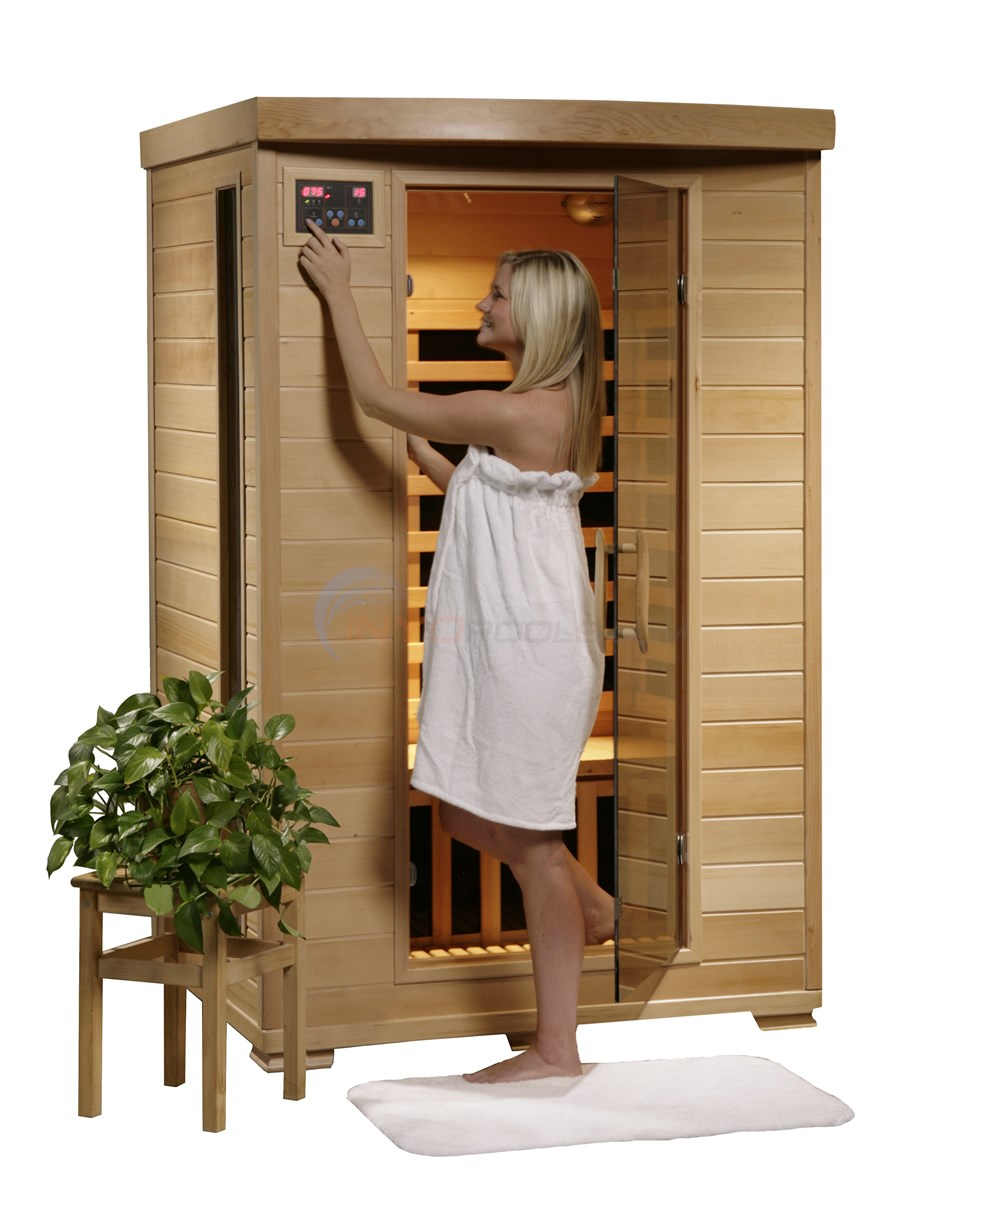 Coronado - 2 Person Ceramic Infrared Sauna